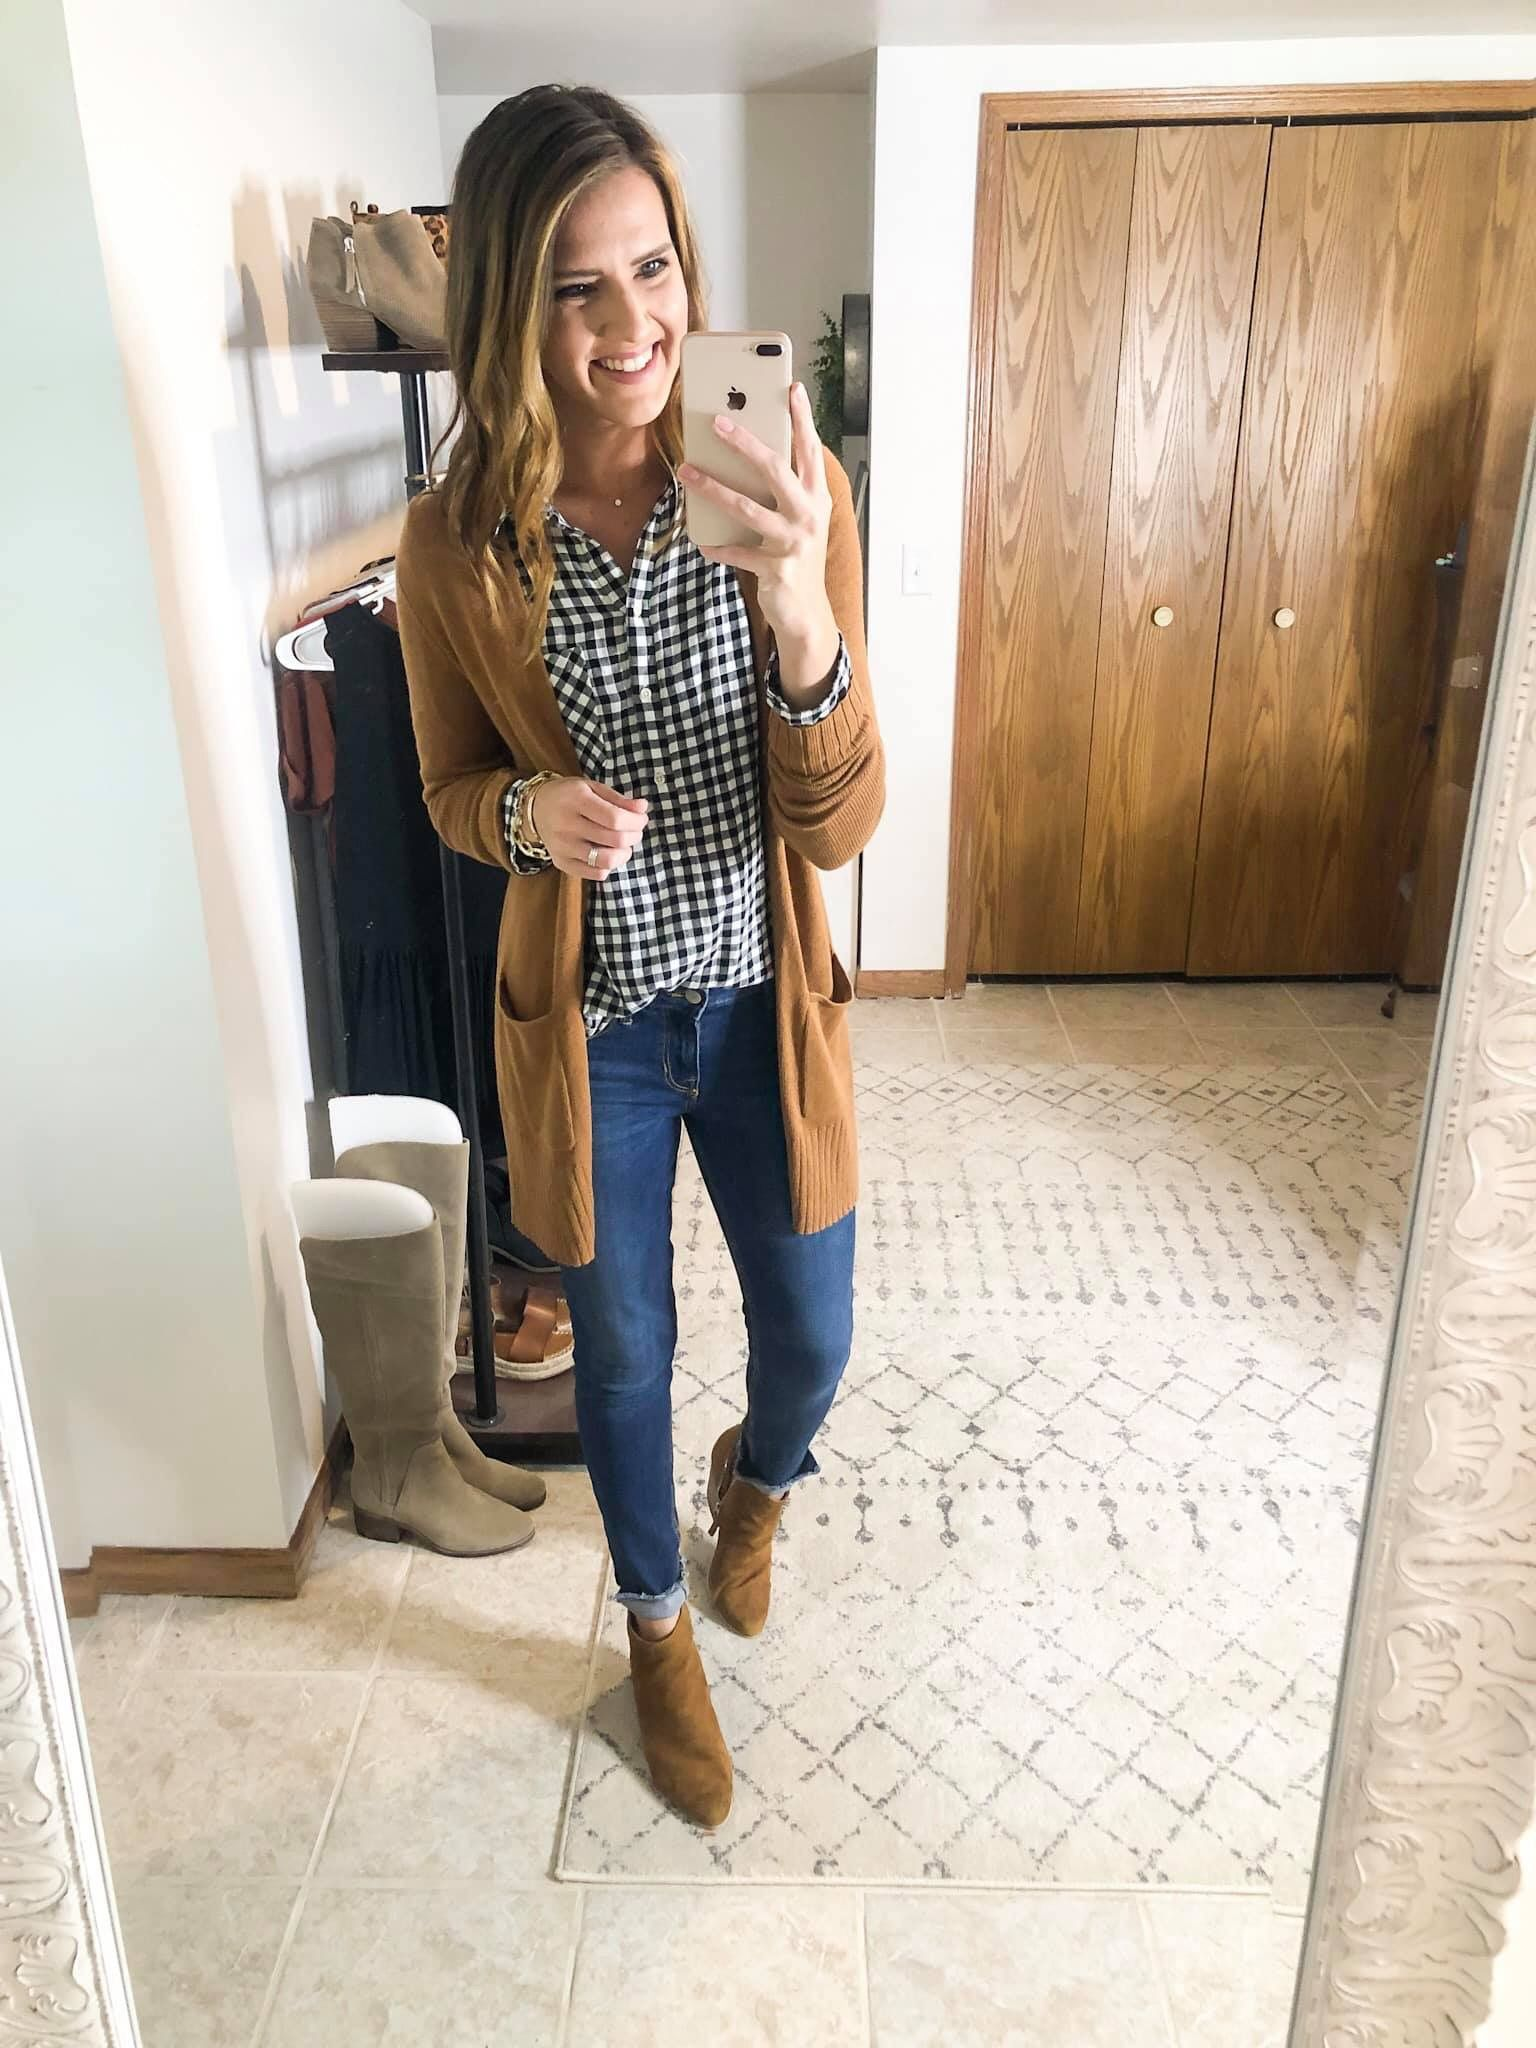 Pin by Sarah Kelm on Fall and winter fashion | Fashion, Womens plaid shirt, Winter fashion